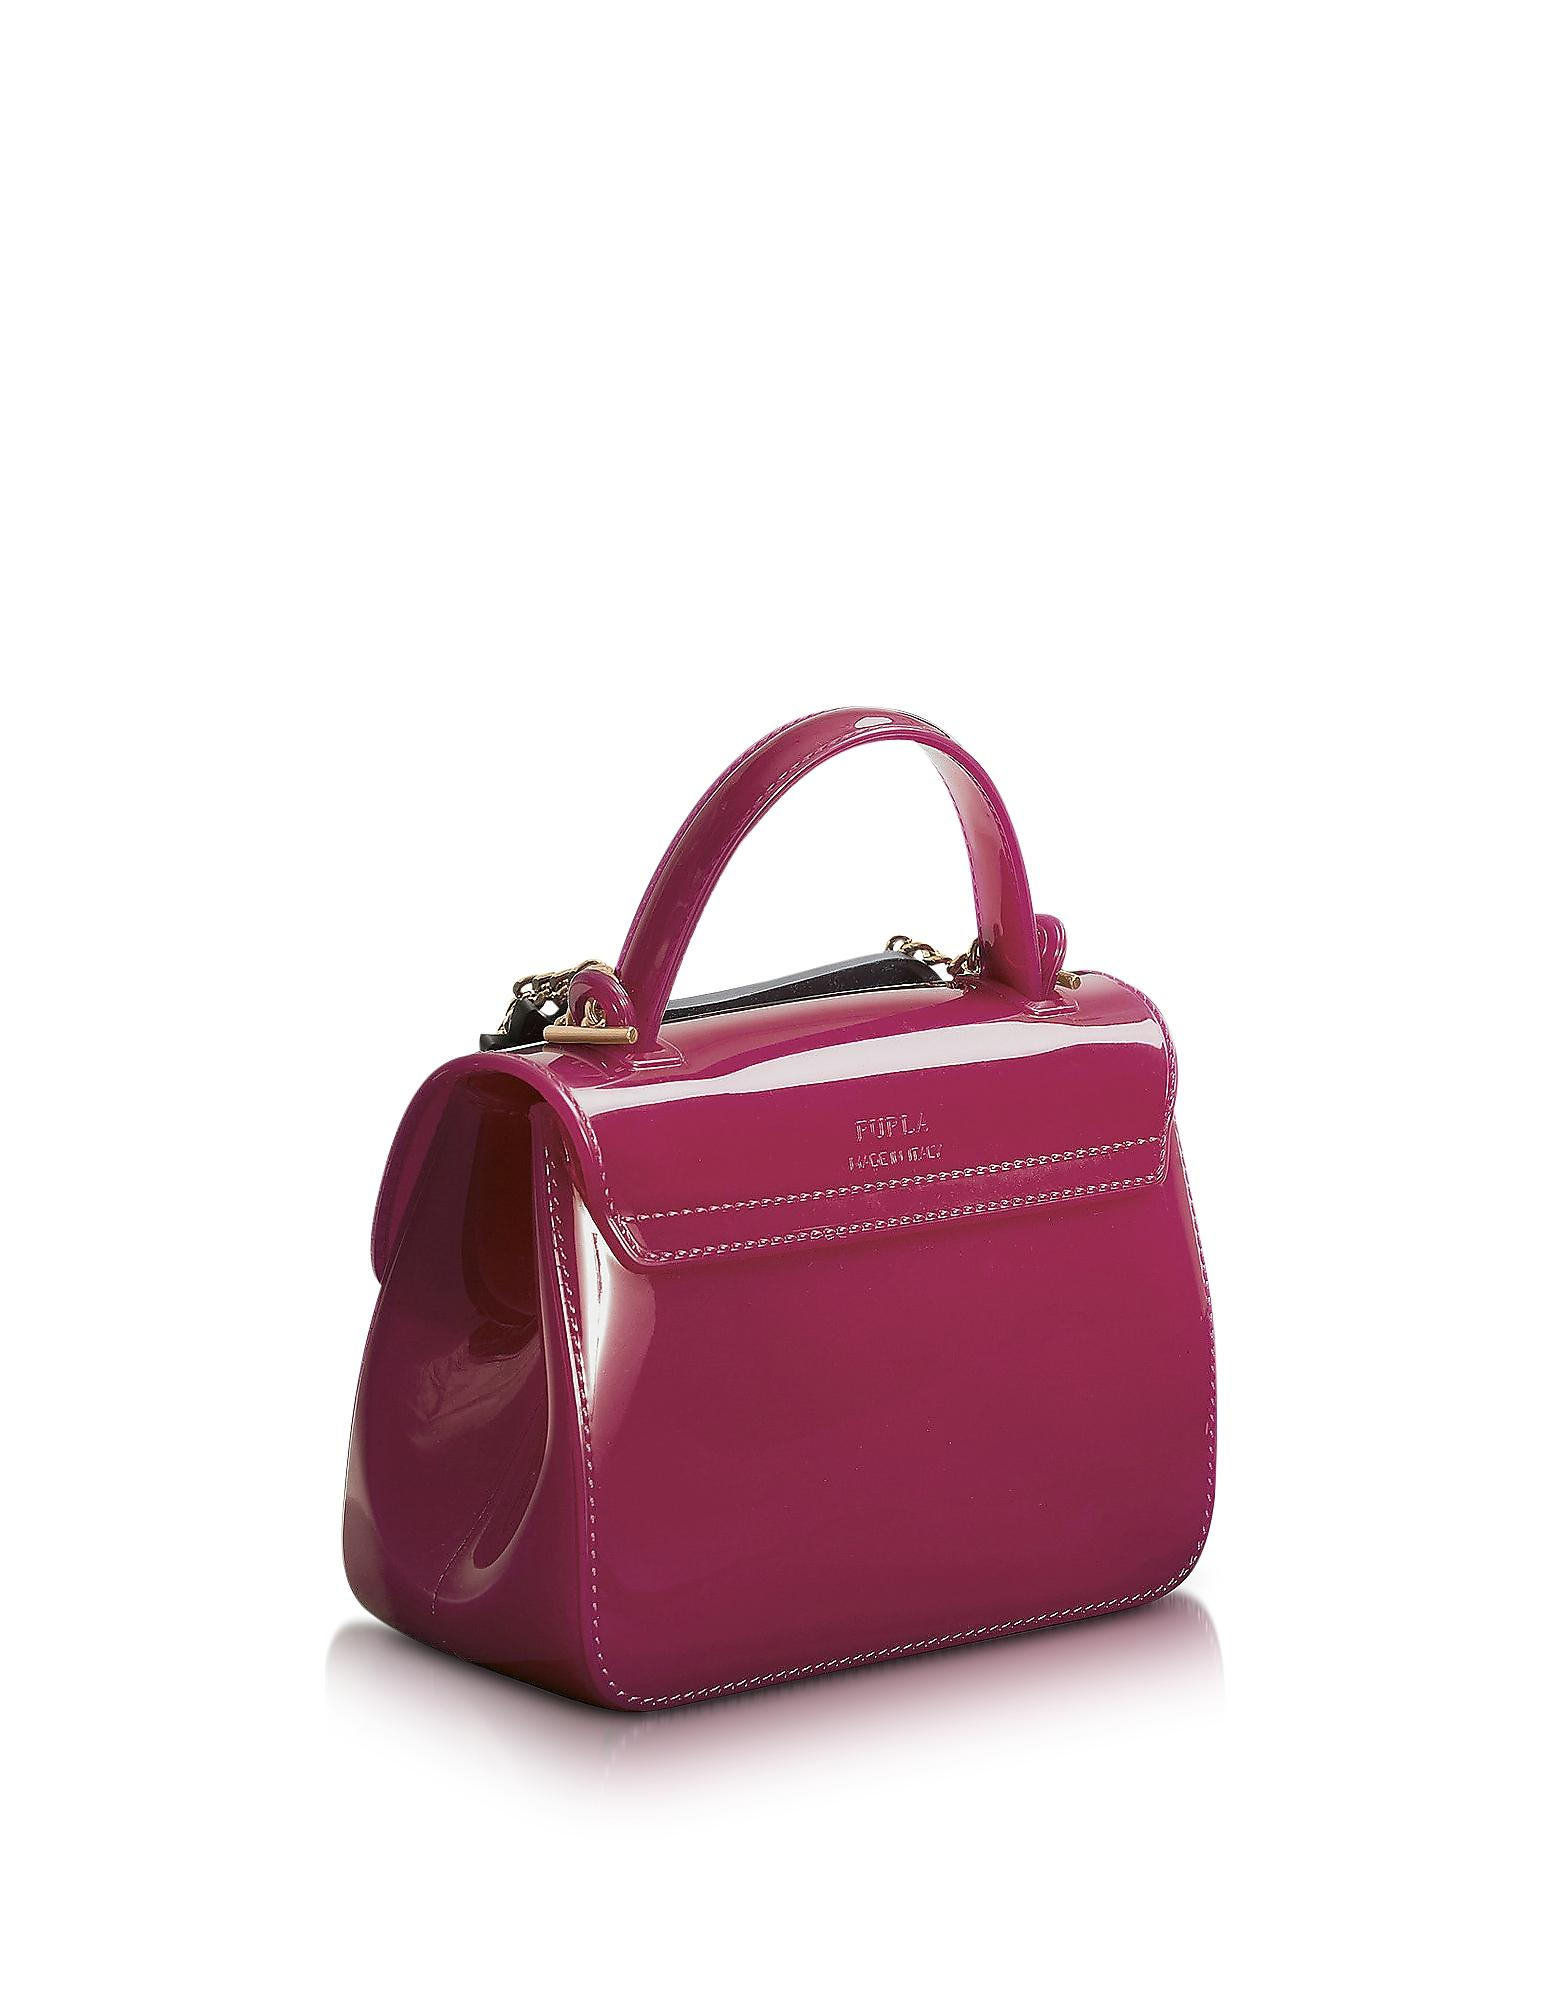 Lyst - Furla Candy Gang Sugar Mini Crossbody Bag in Purple